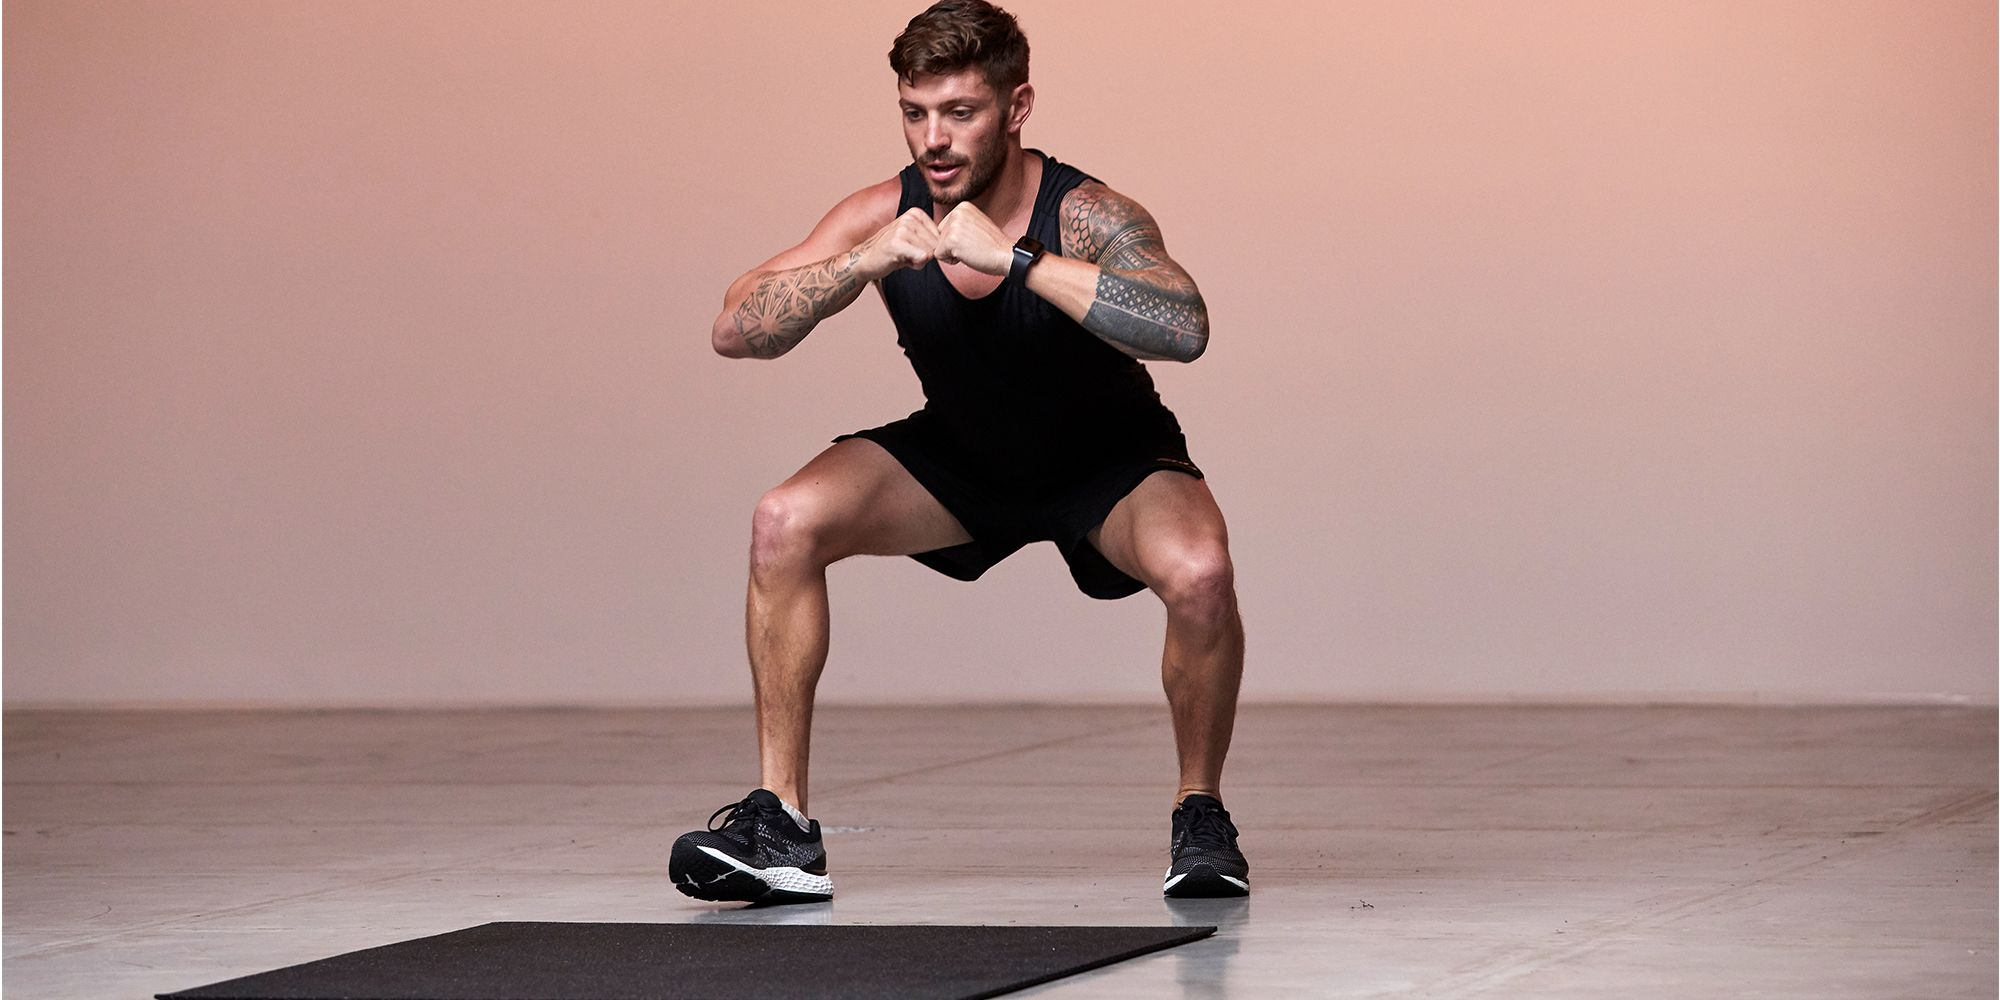 Chris Hemsworth's Fitness Team Just Shared This 20-Minute Bodyweight Workout